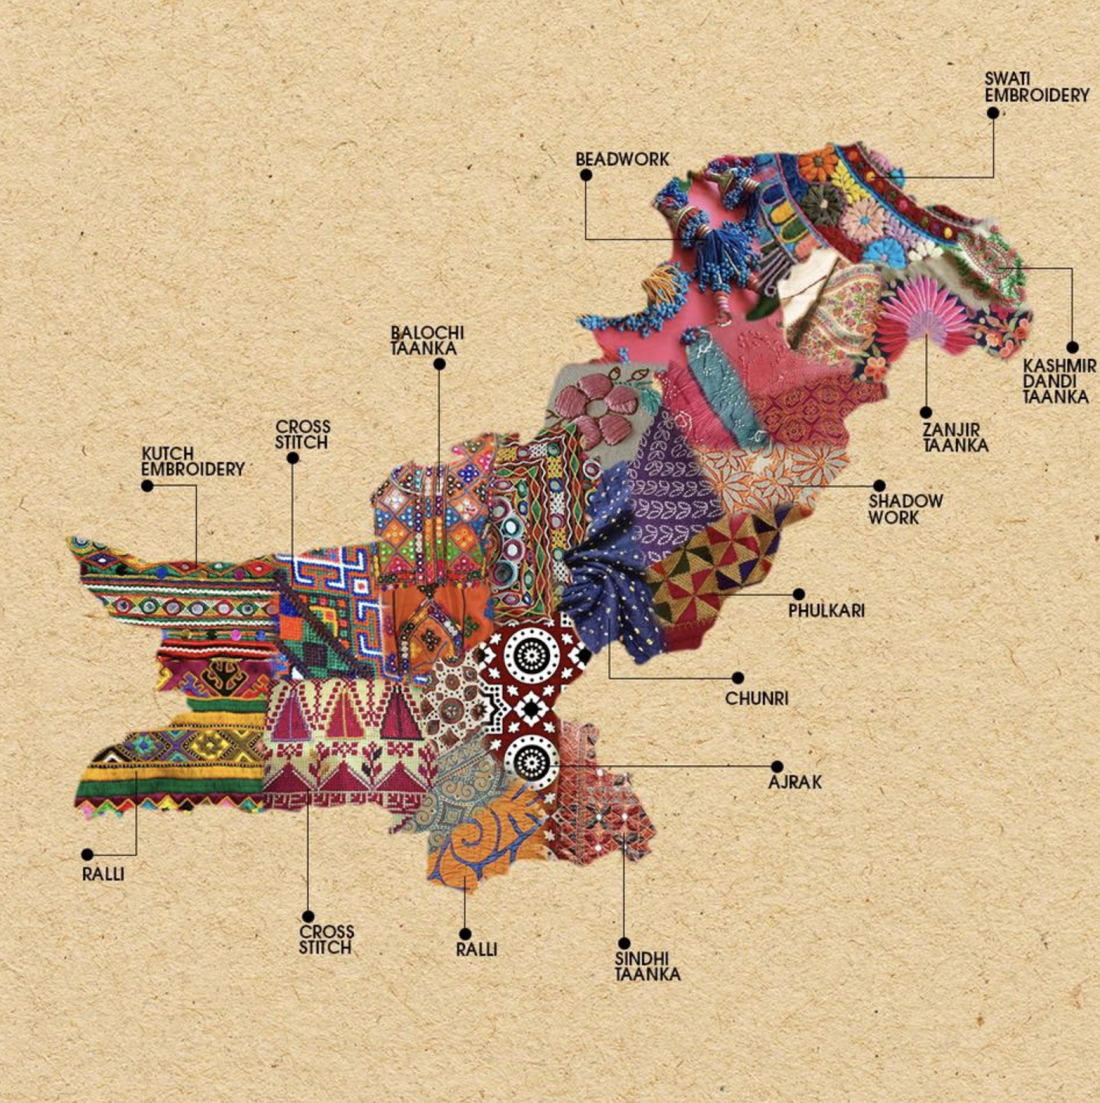 artistic maps of pakistan u0026 india show the embroidery techniques